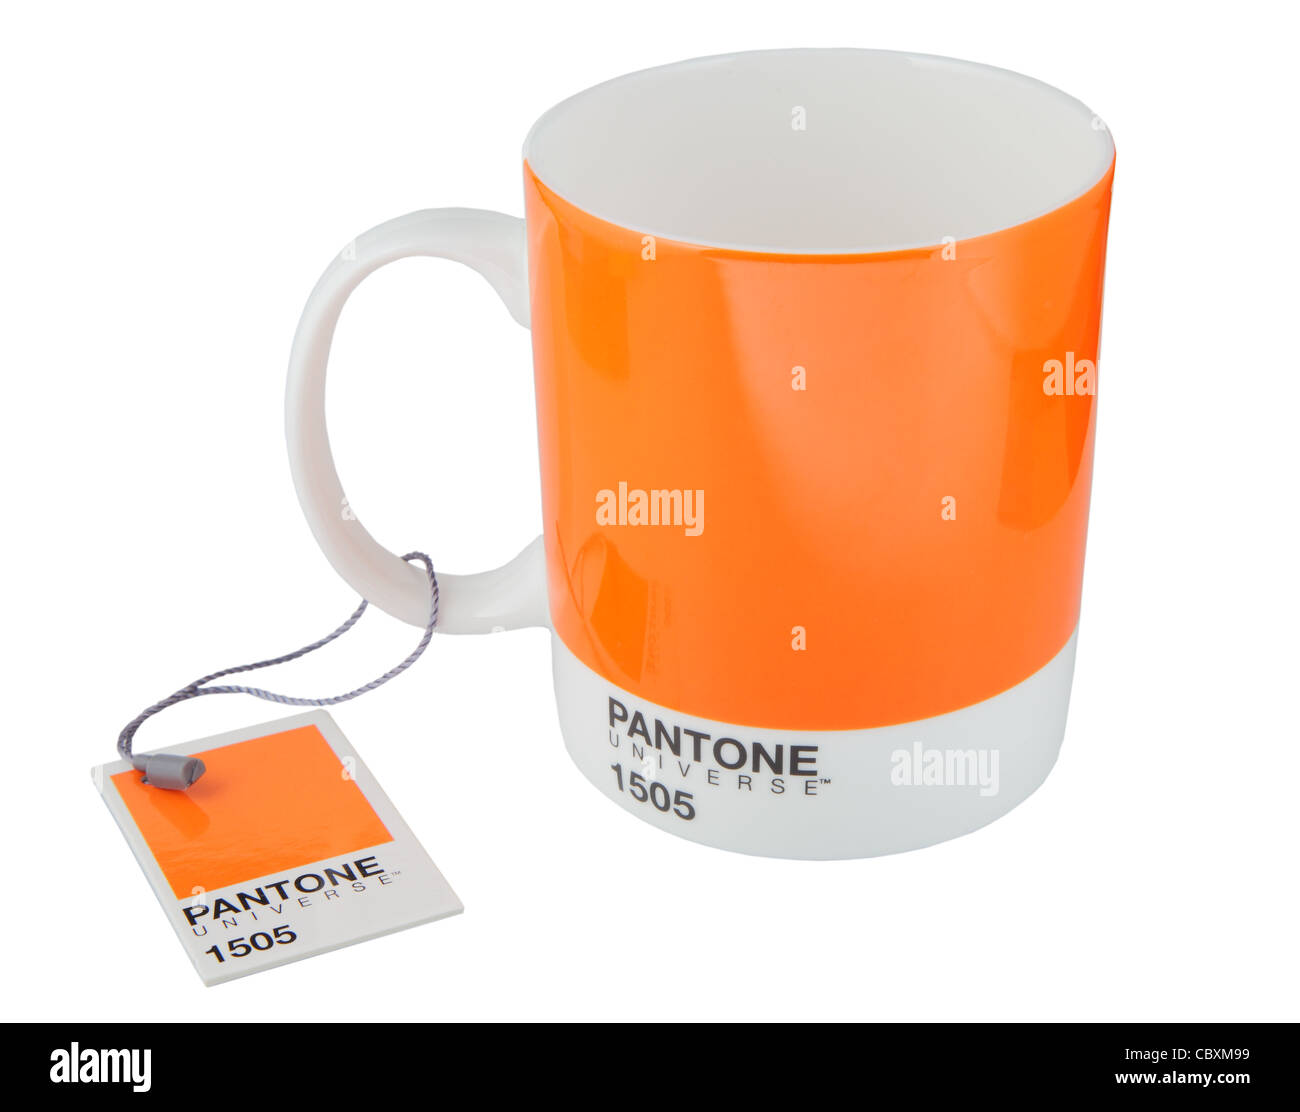 orange-pantone-1505-mug-with-label-isola